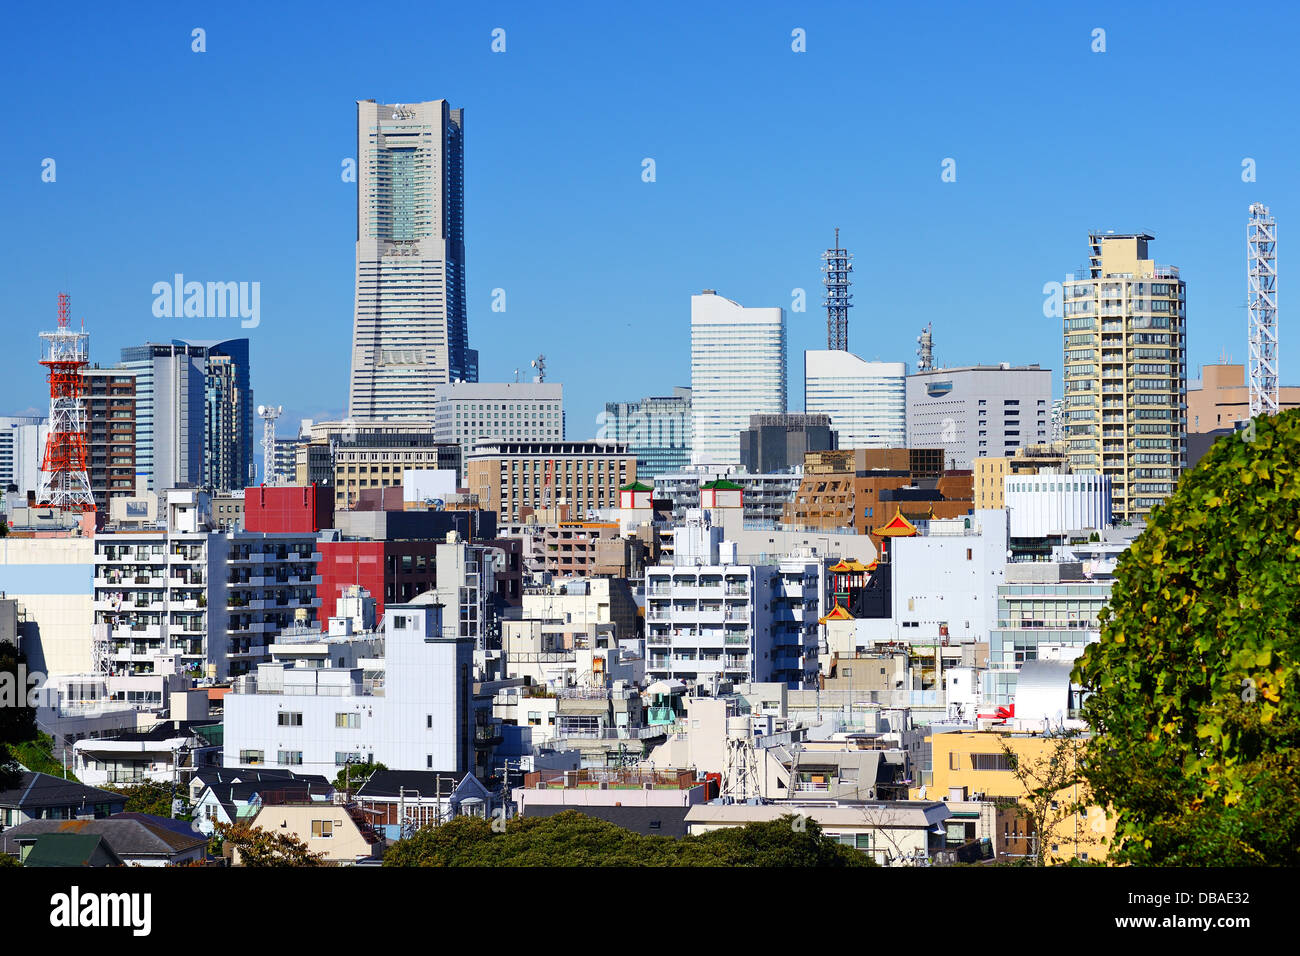 Cityscape of Yokohama, Japan, the second largest city in the country. - Stock Image